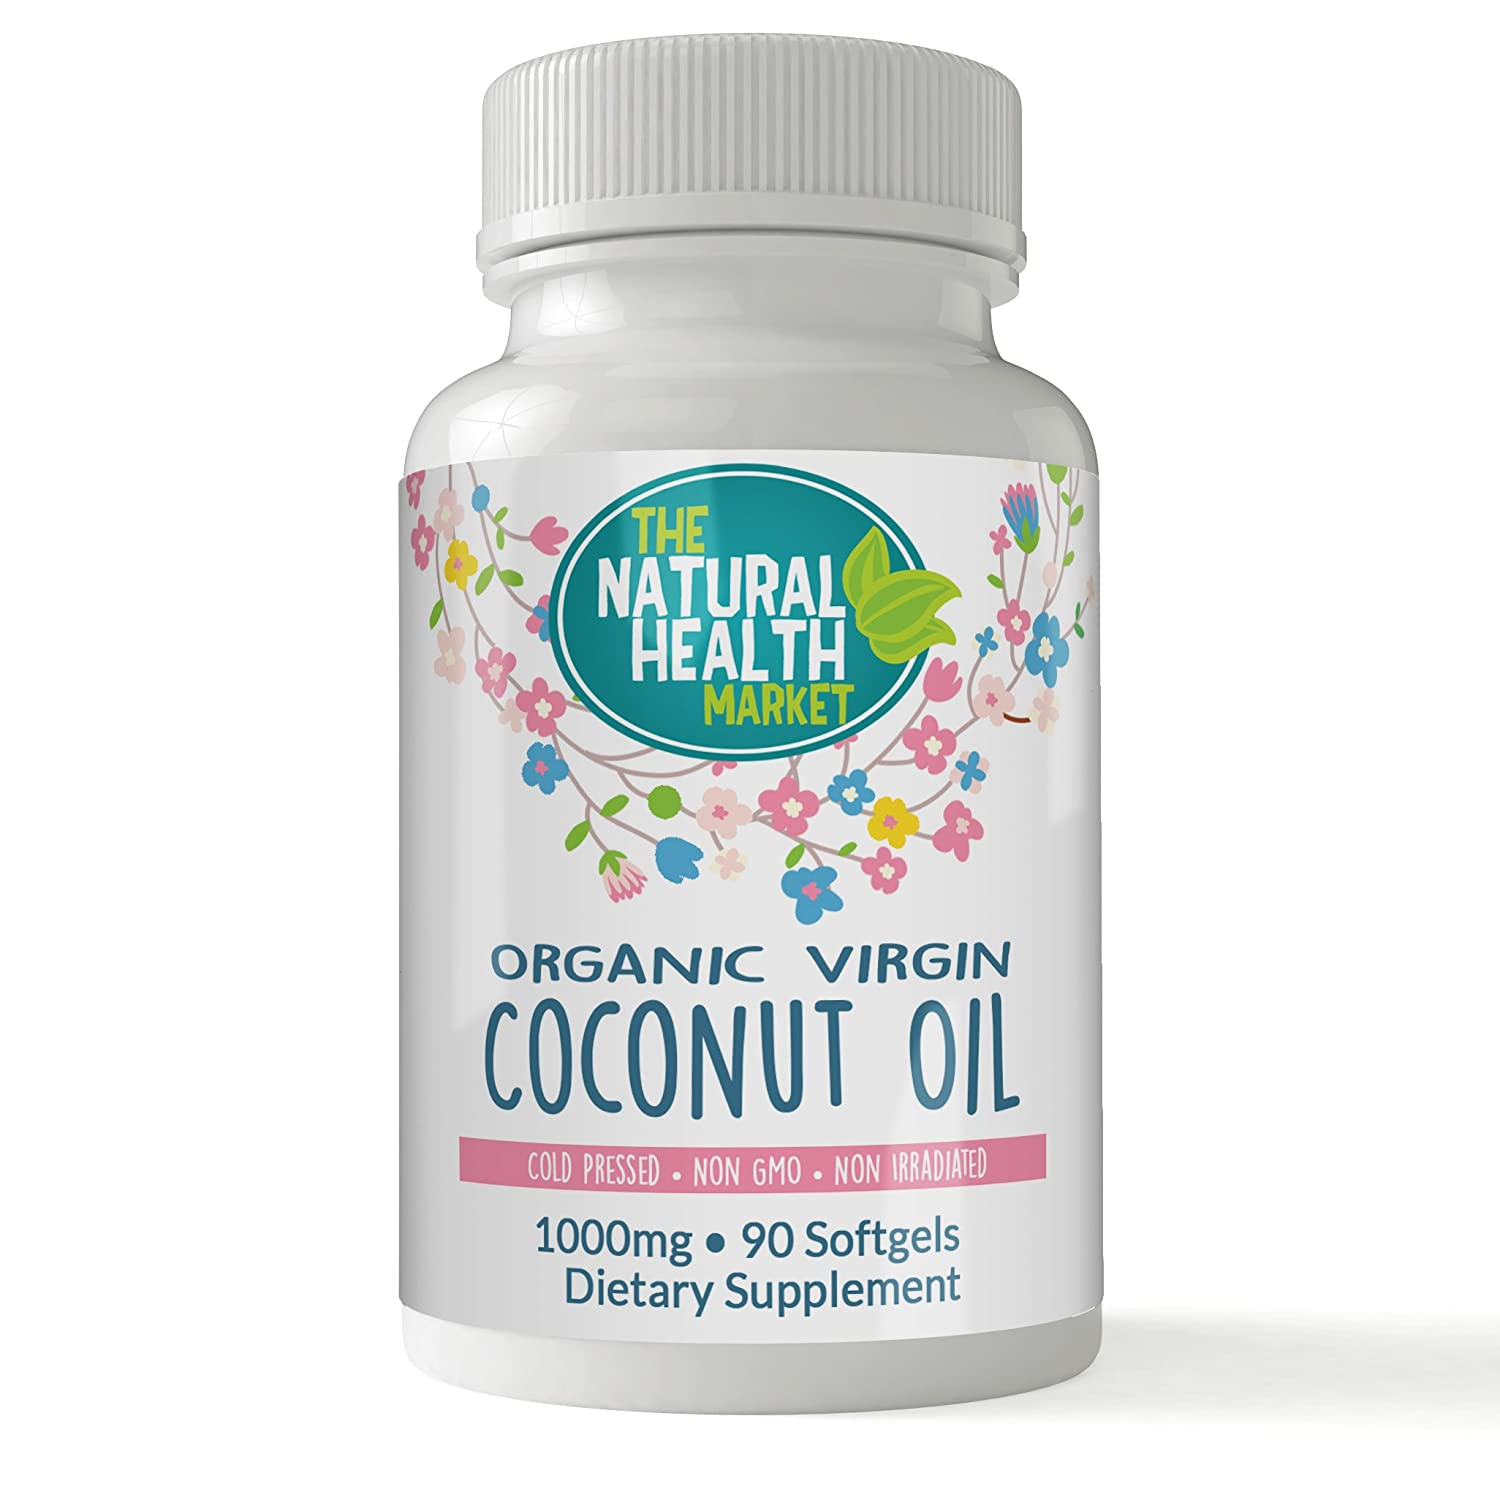 Organic Coconut Oil Capsules 1000mg by The Natural Health Market • Cold Pressed • Virgin Coconut Oil Capsules for Weight Loss • Stimulate Fat Burning (90 Capsules)